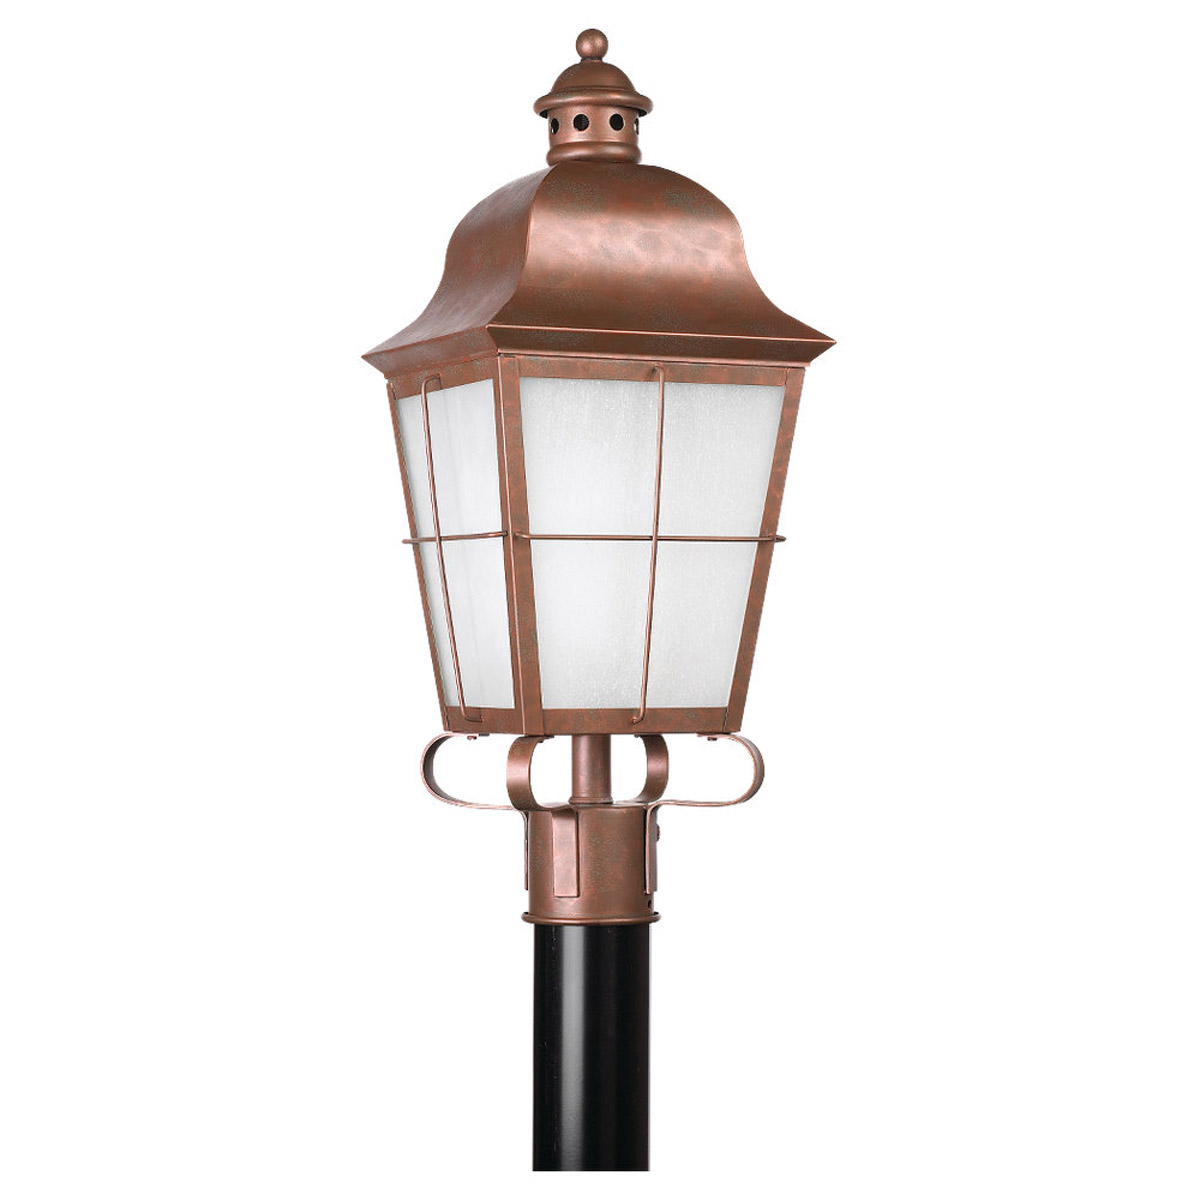 Sea Gull Lighting Chatham 1 Light Outdoor Post Lantern in Weathered Copper 82973PBLE-44 photo